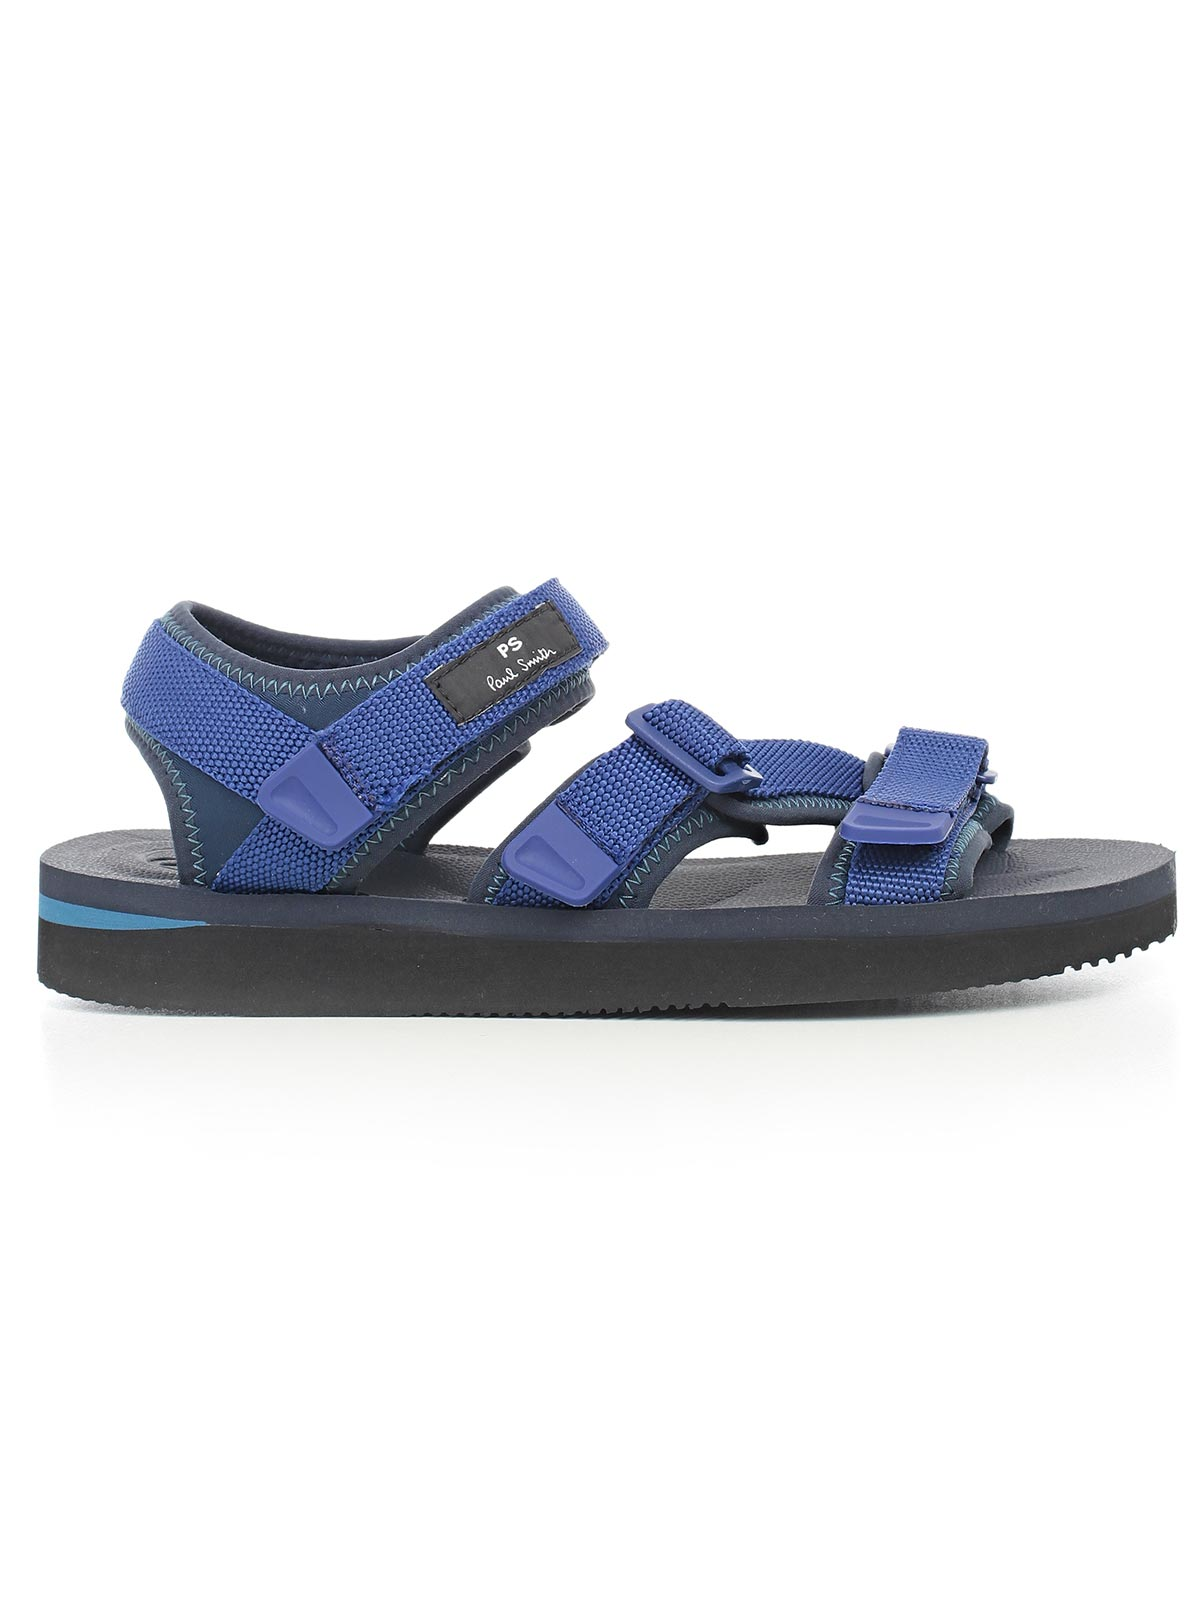 Picture of PS PAUL SMITH Sandals